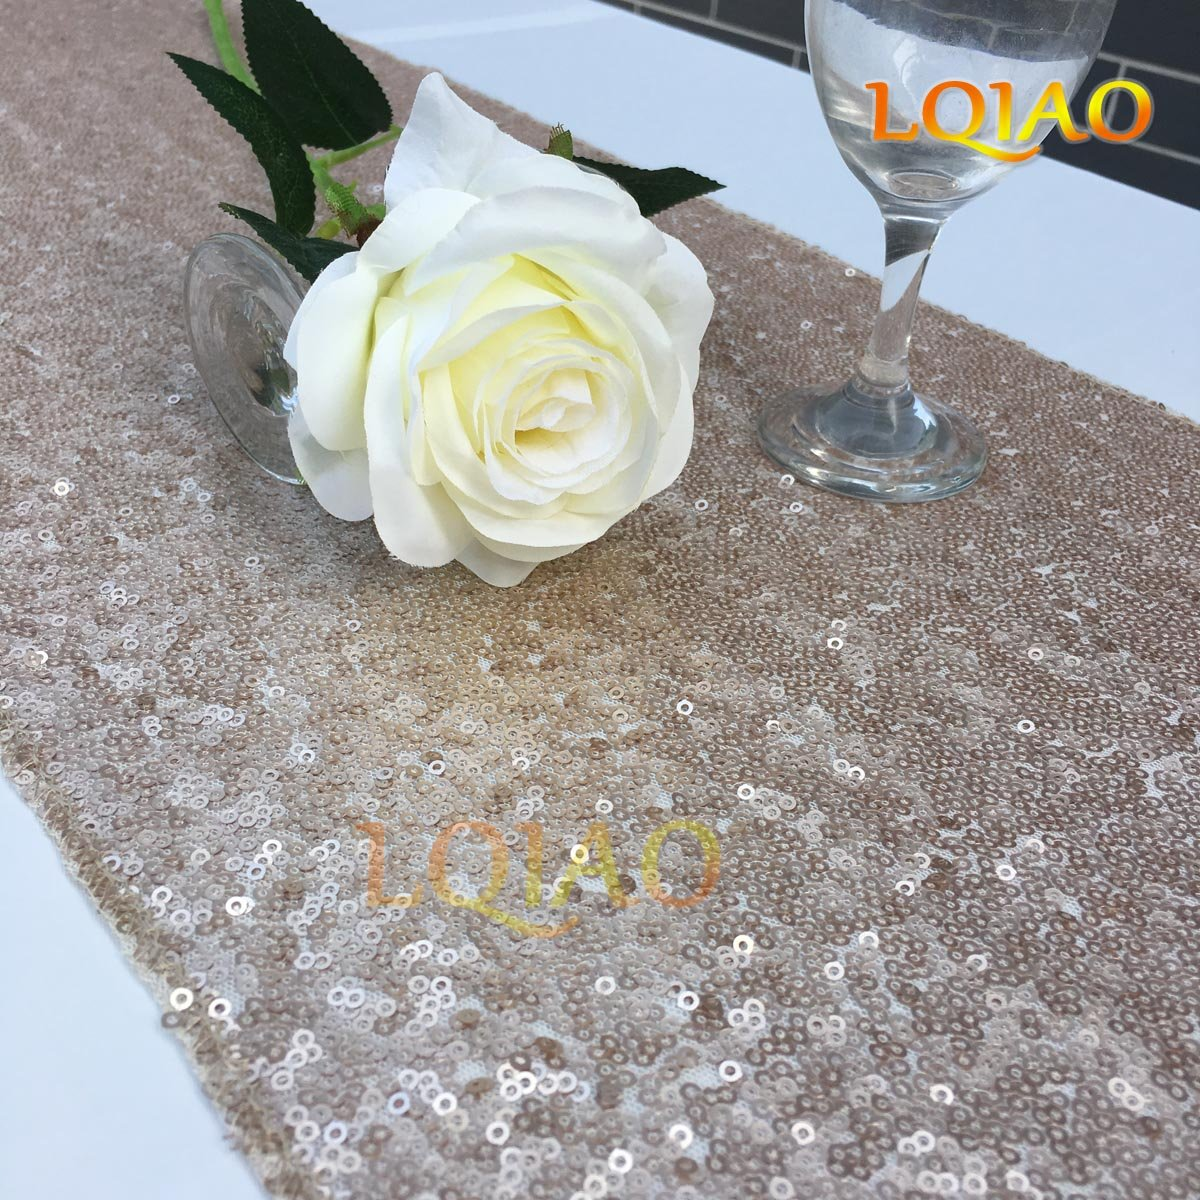 LQIAO Christmas Table Runner Sequin 12x108-in, Champagne, Shiny Fabric Birthday/Wedding/Party Decoration(wholesale Possible), Pack of 20 PCS by LQIAO